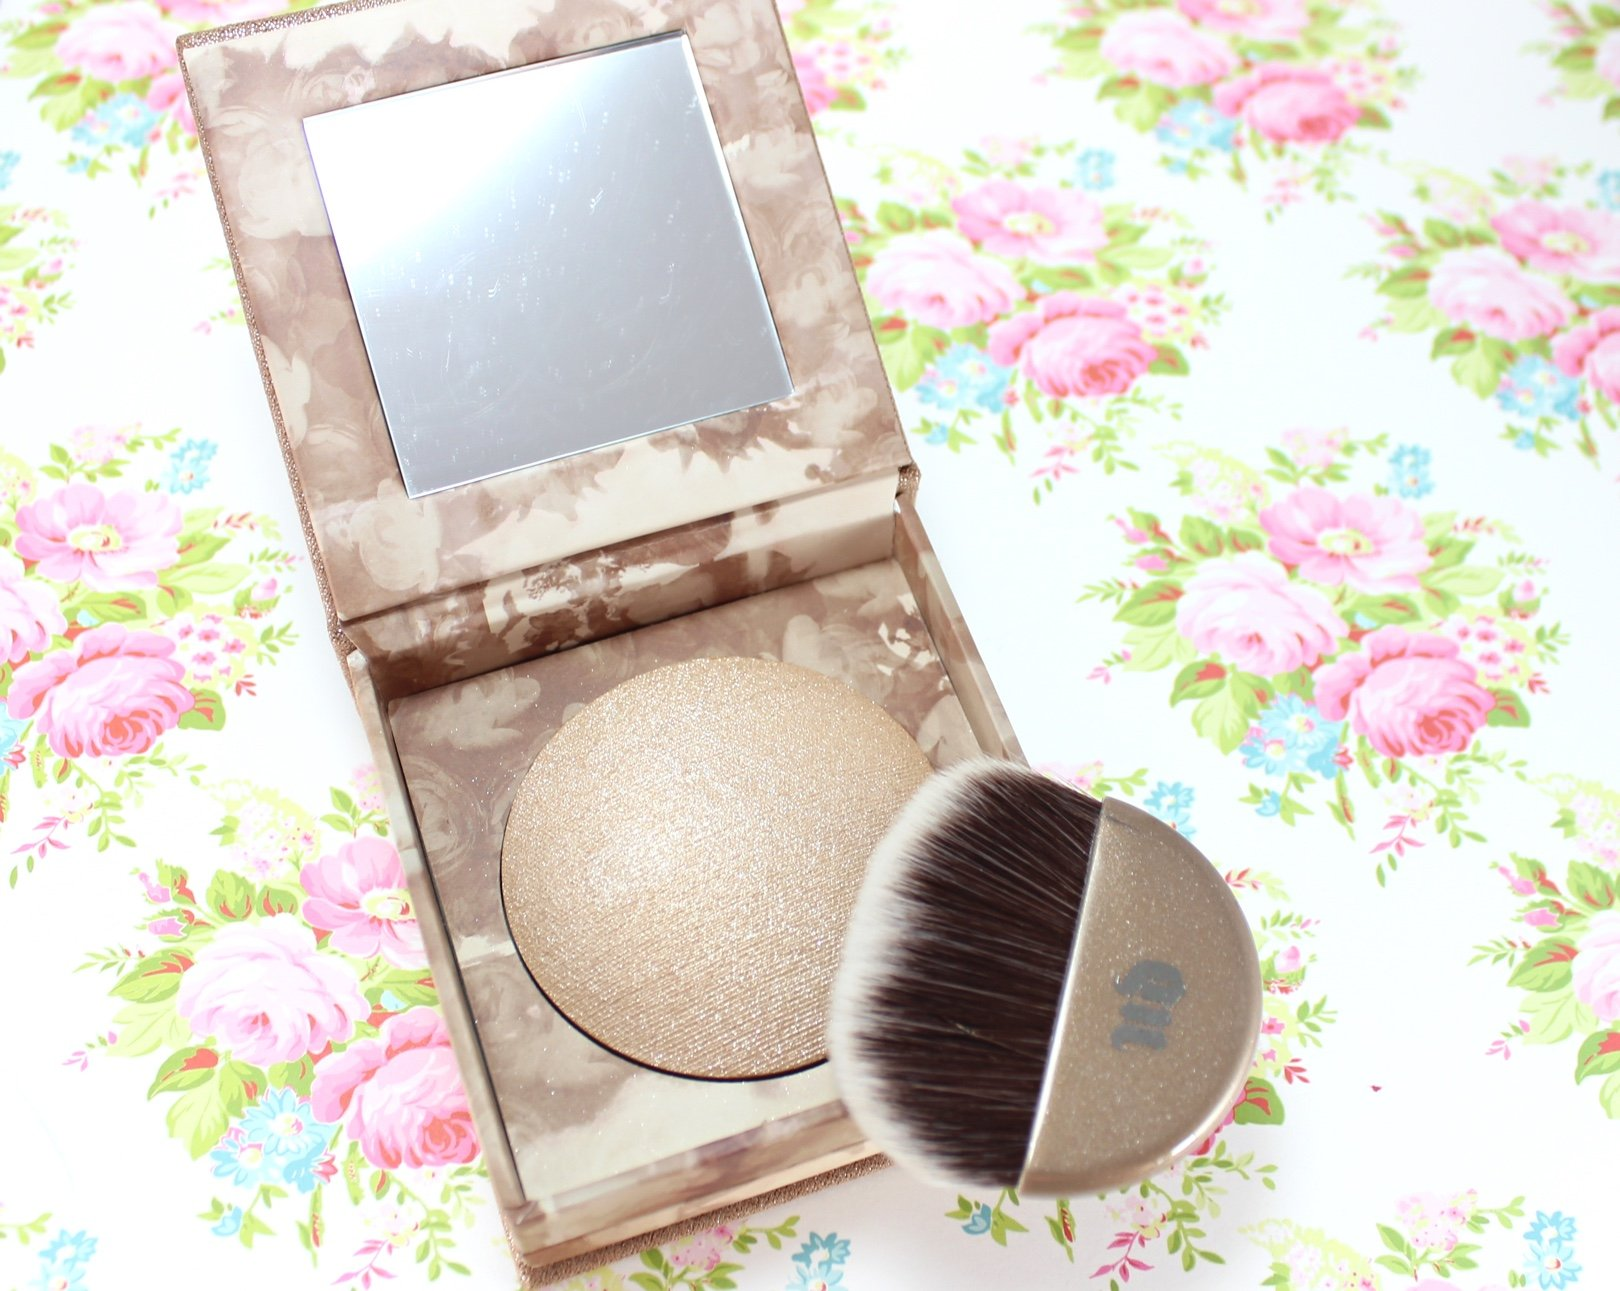 Urban Decay Naked Illuminated Powder Luminous review bbloggers